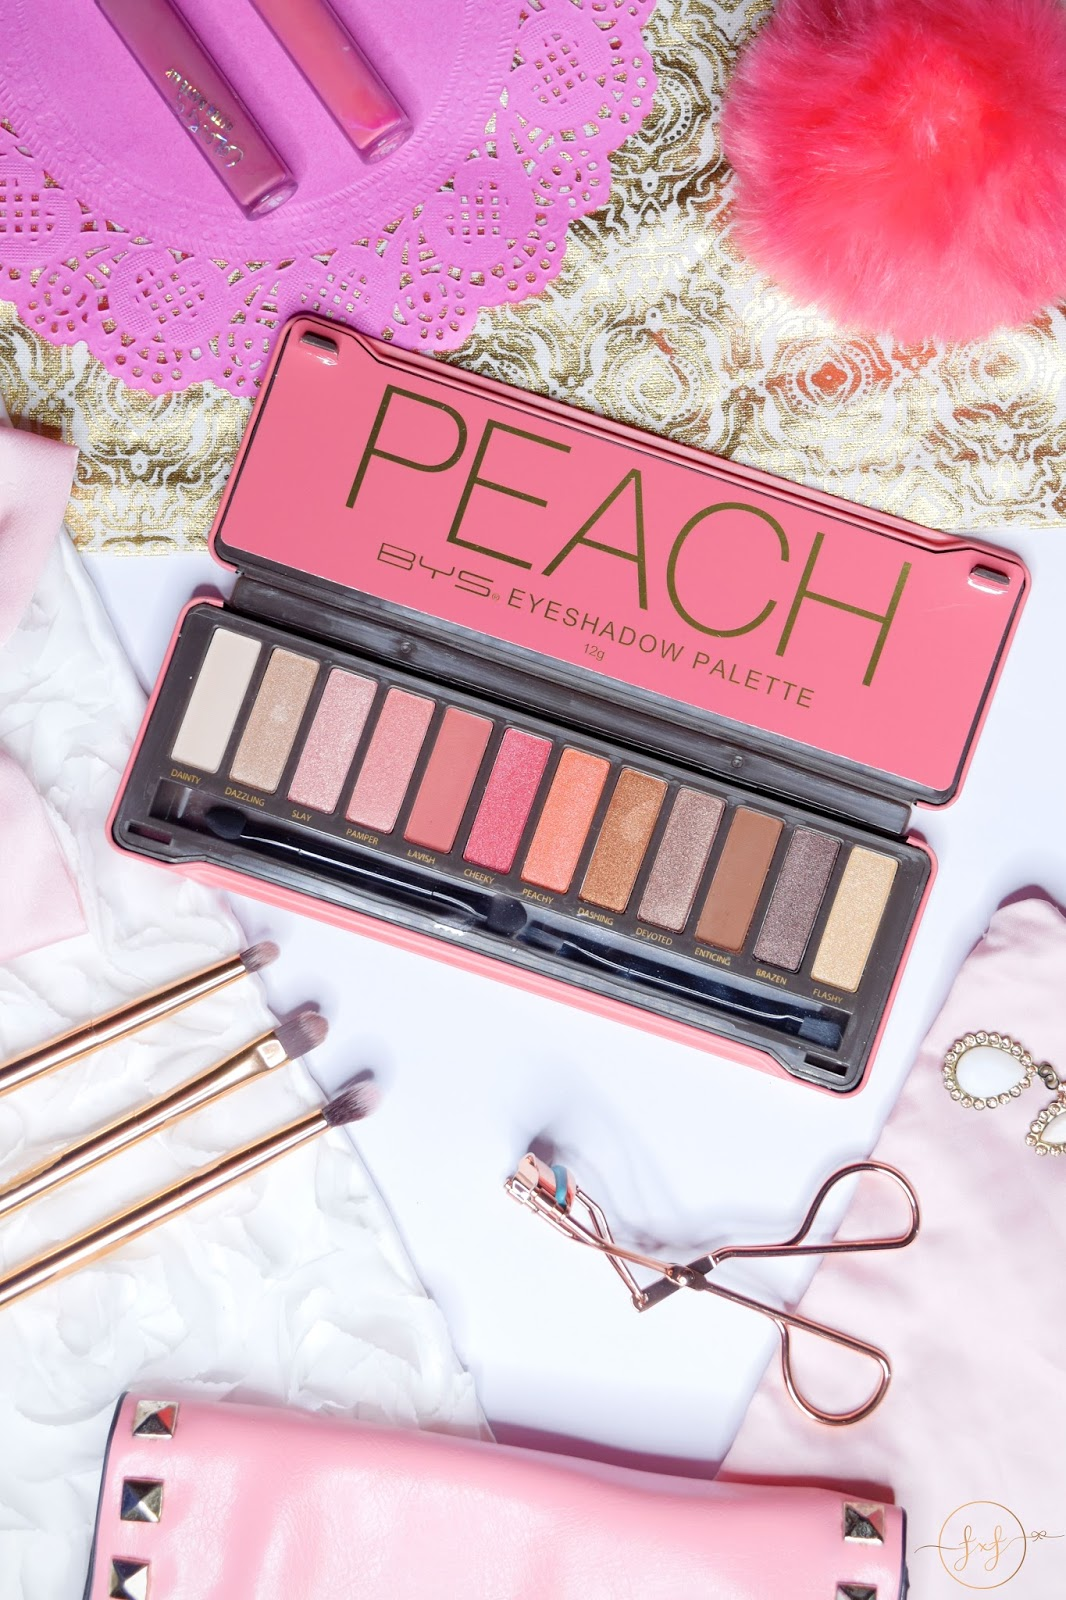 BYS Peach Eyeshadow Palette | Review & Swatches